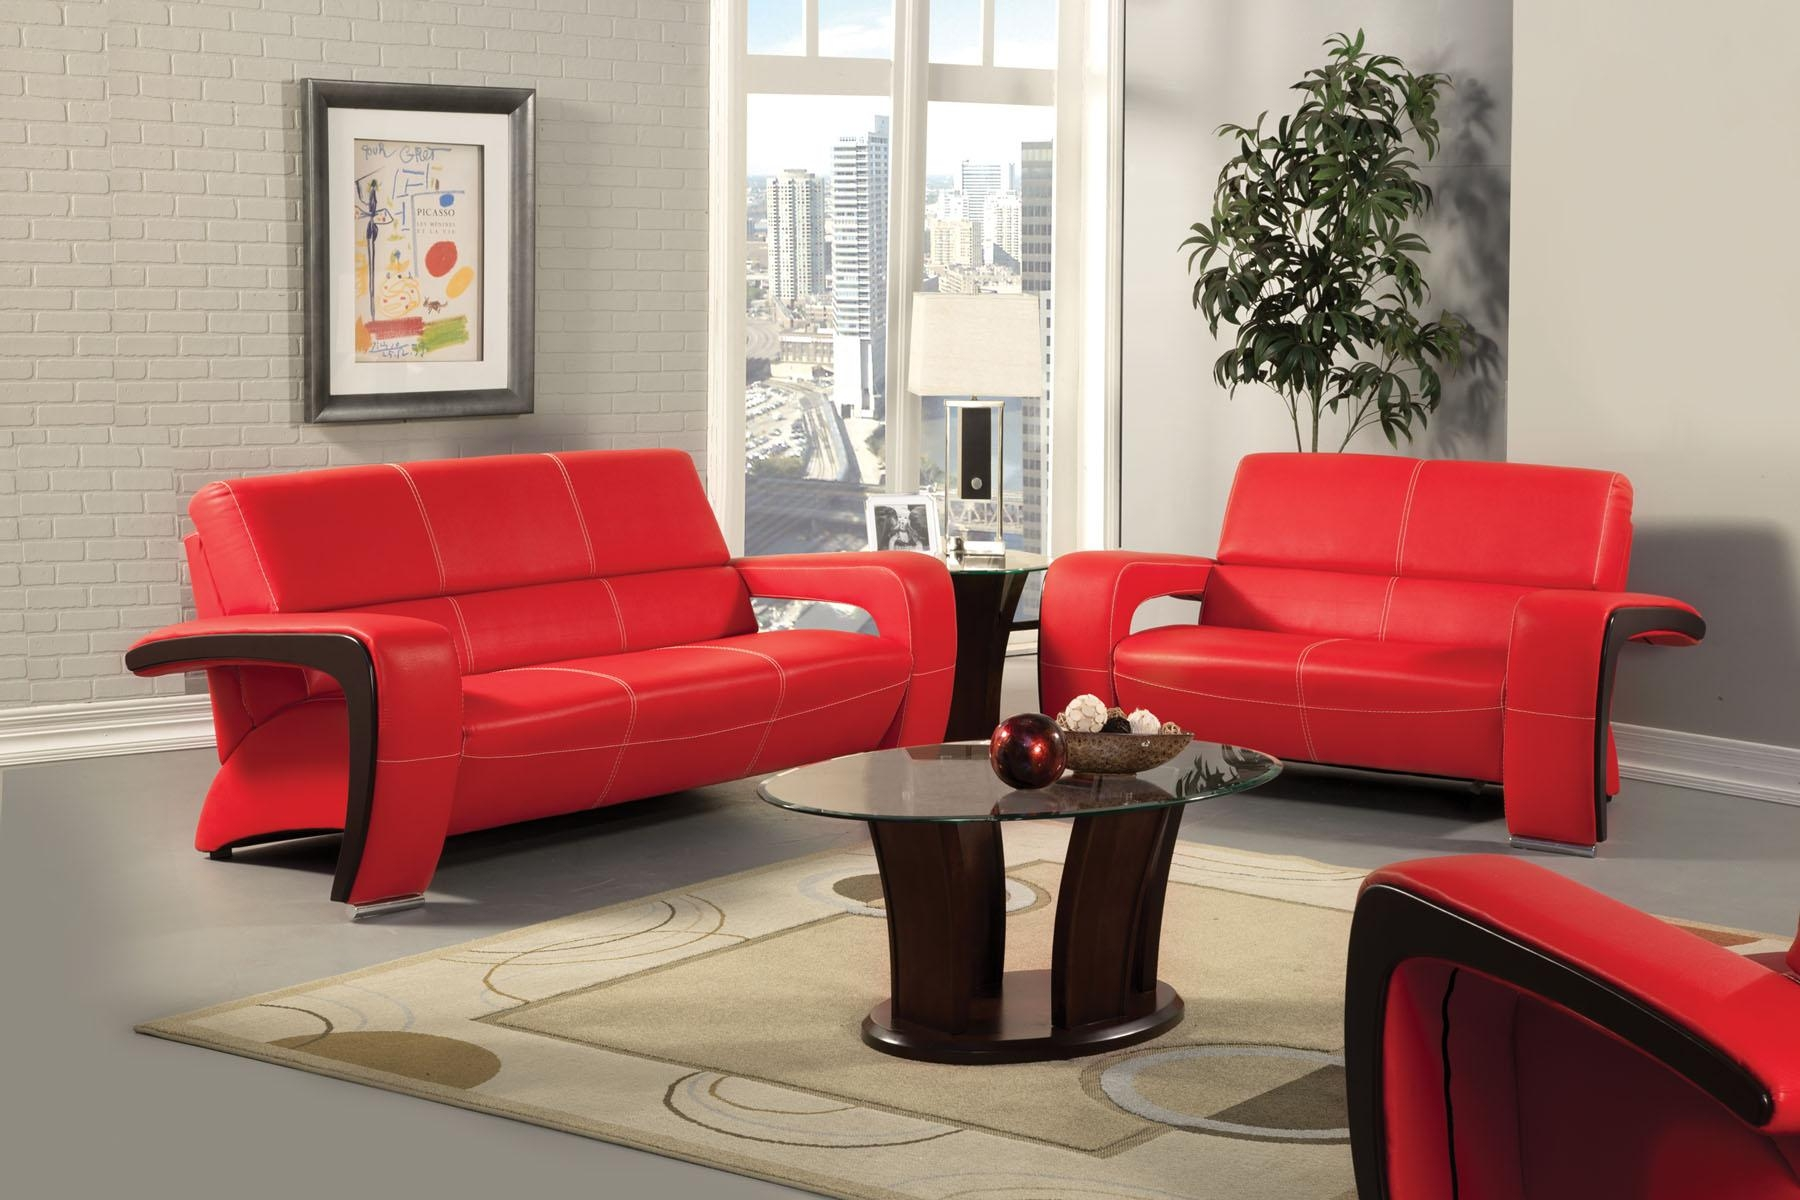 Uniques And Chairs Thesofa Unusual Couch Covers Home Decor Living pertaining to Unusual Sofas